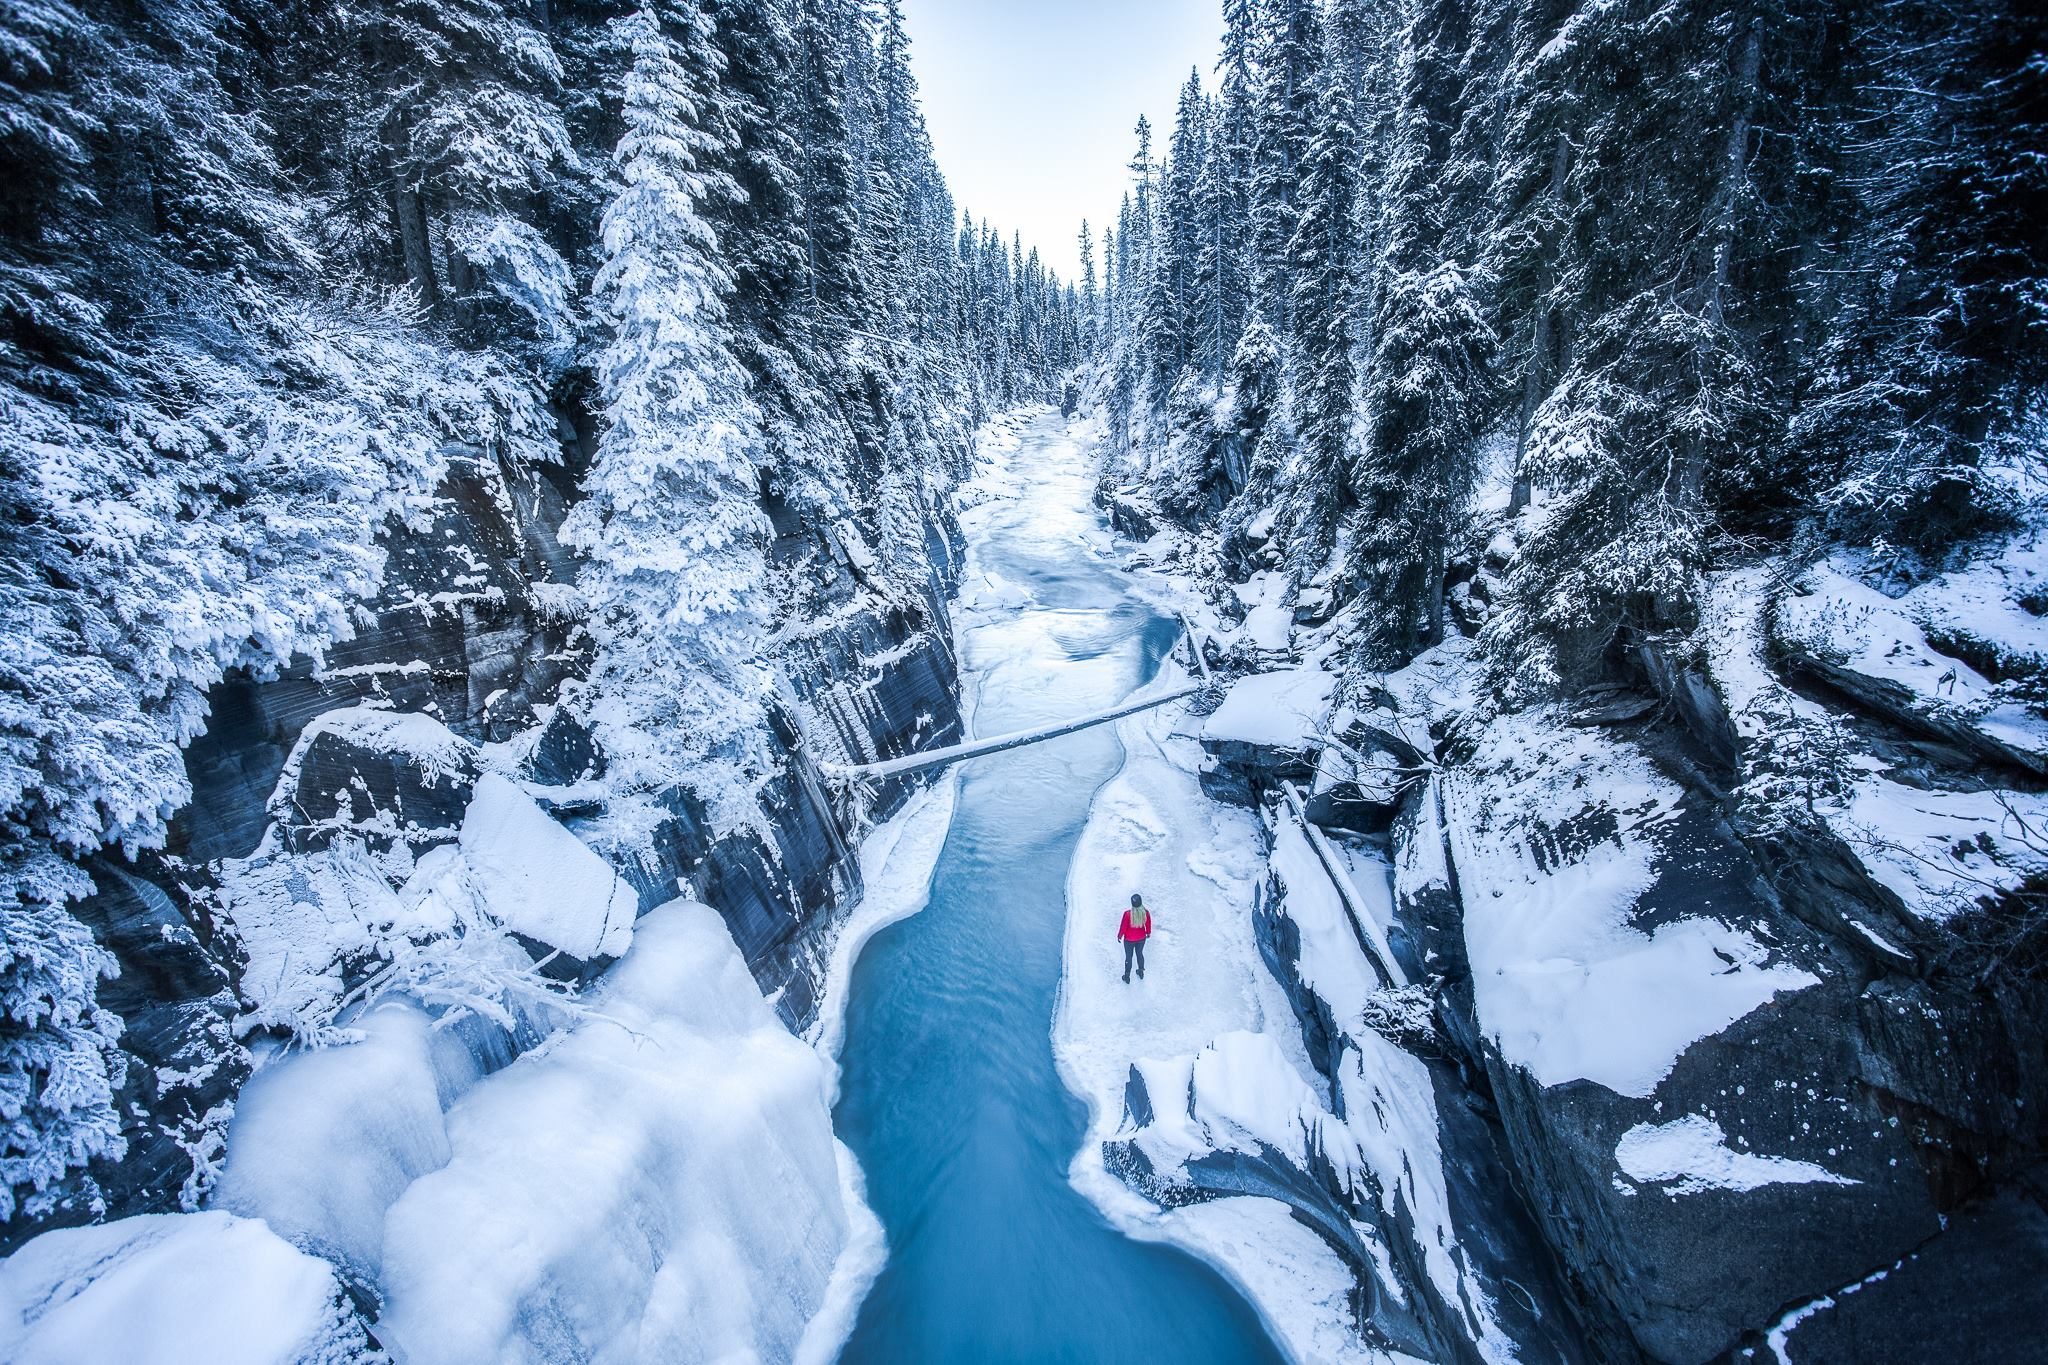 30 Incredible Winter Photos That Will Make You Wish Spring ...